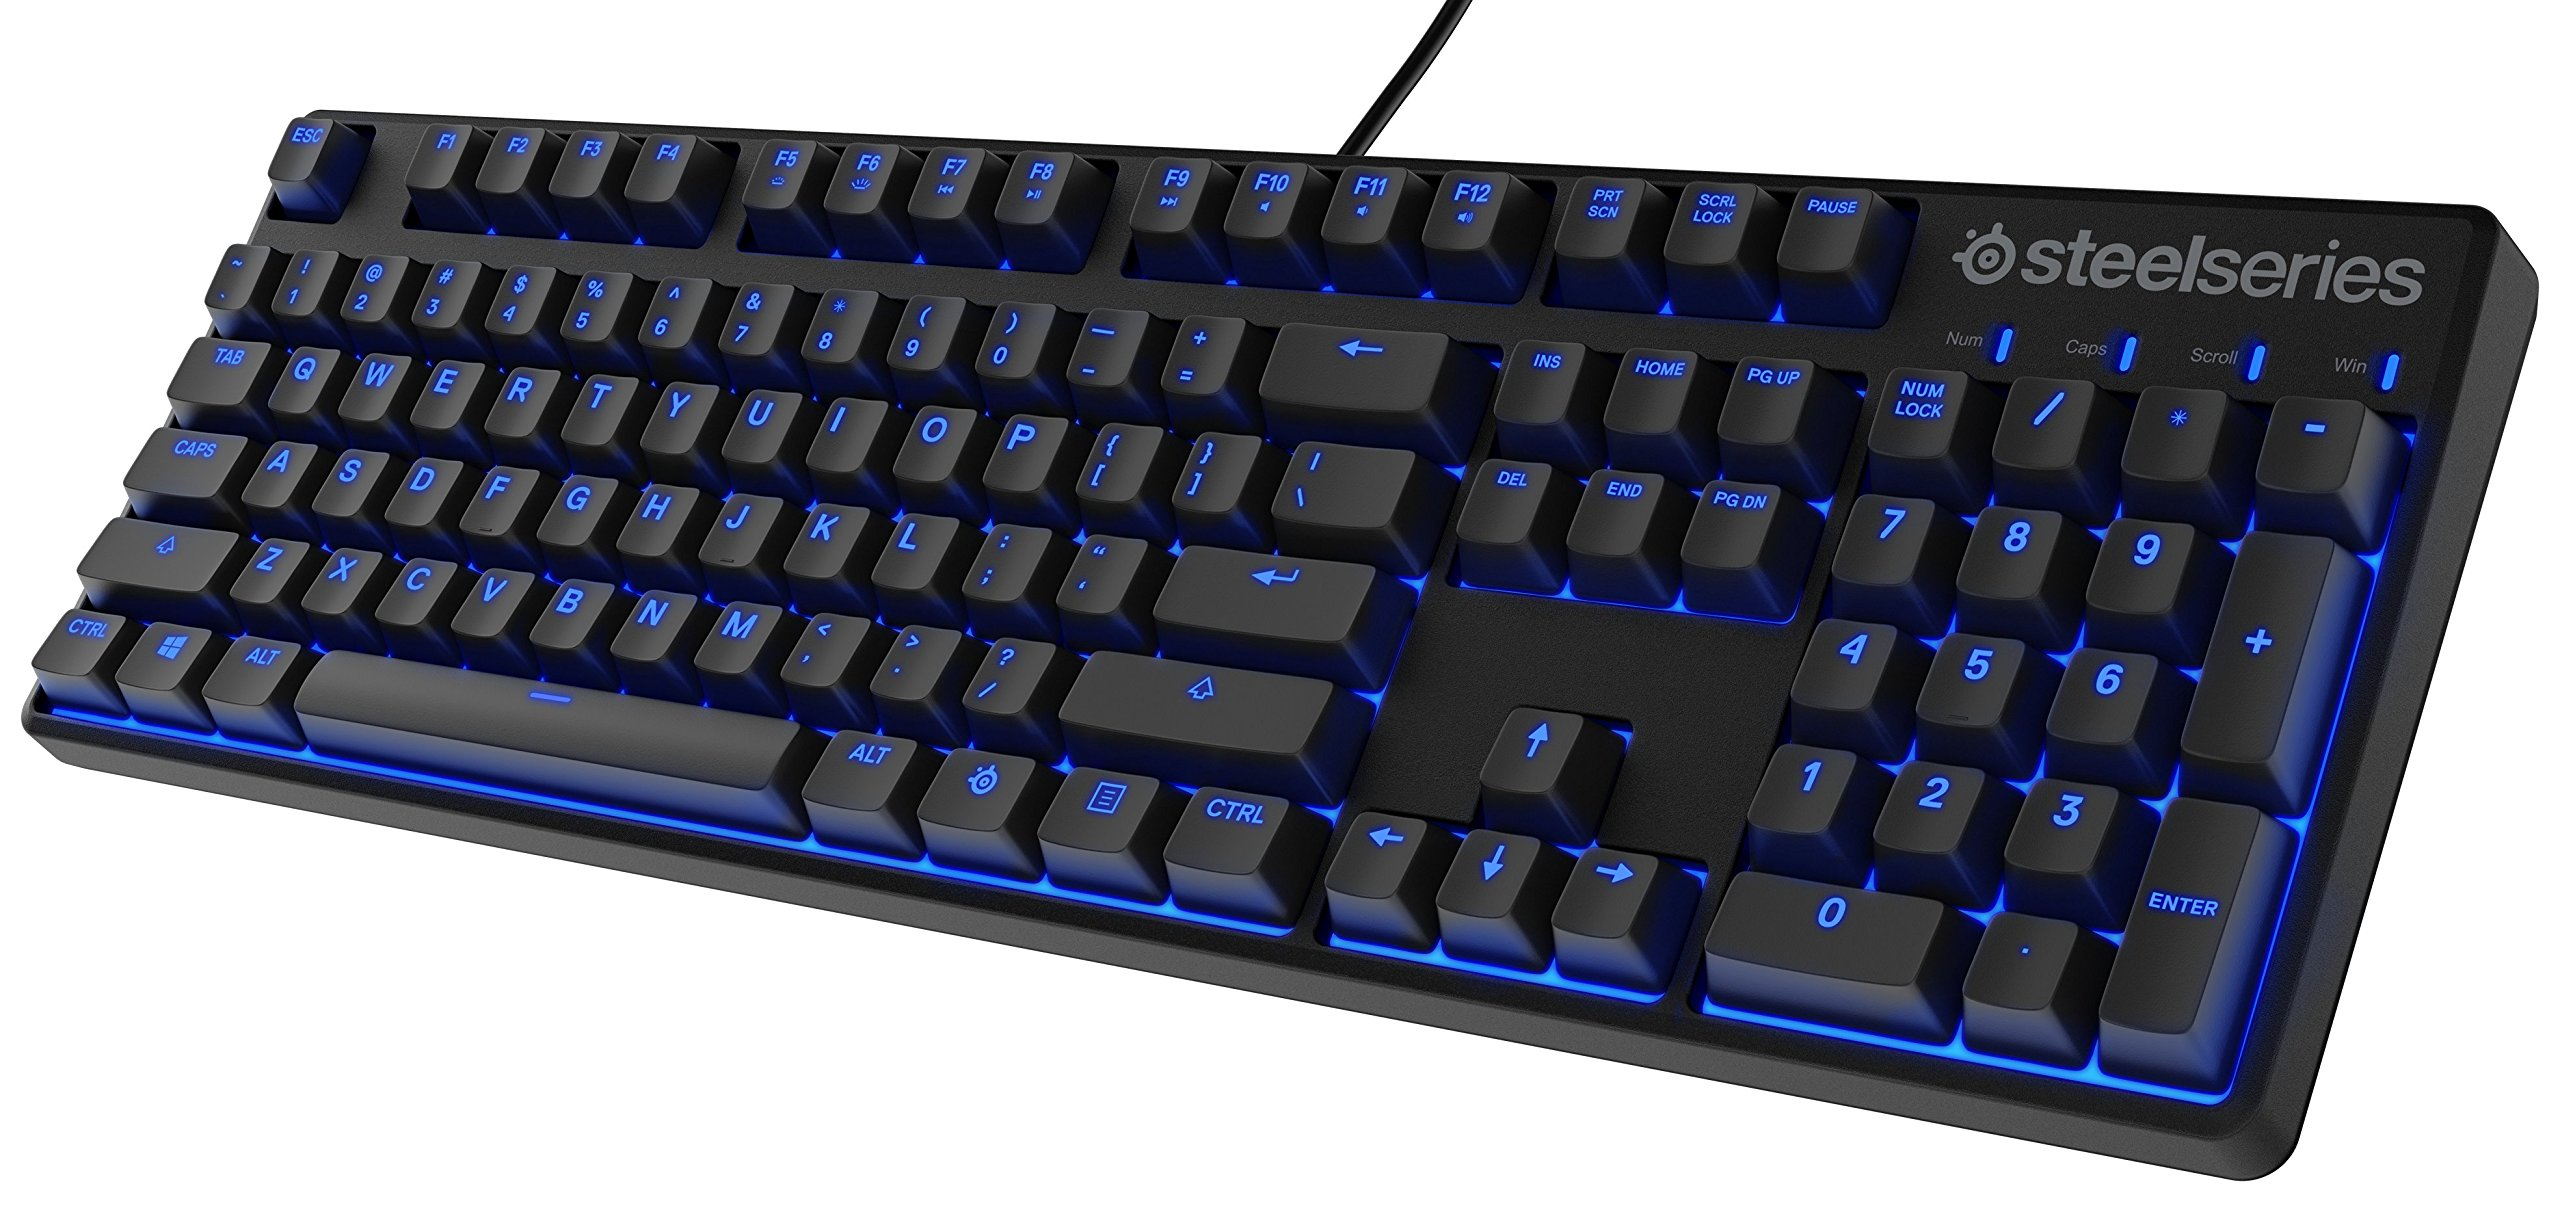 SteelSeries Apex M400 Illuminated Mechanical Gaming Keyboard - Linear Switch - Blue LED Backlit - Media Controls - Steel Back Plate